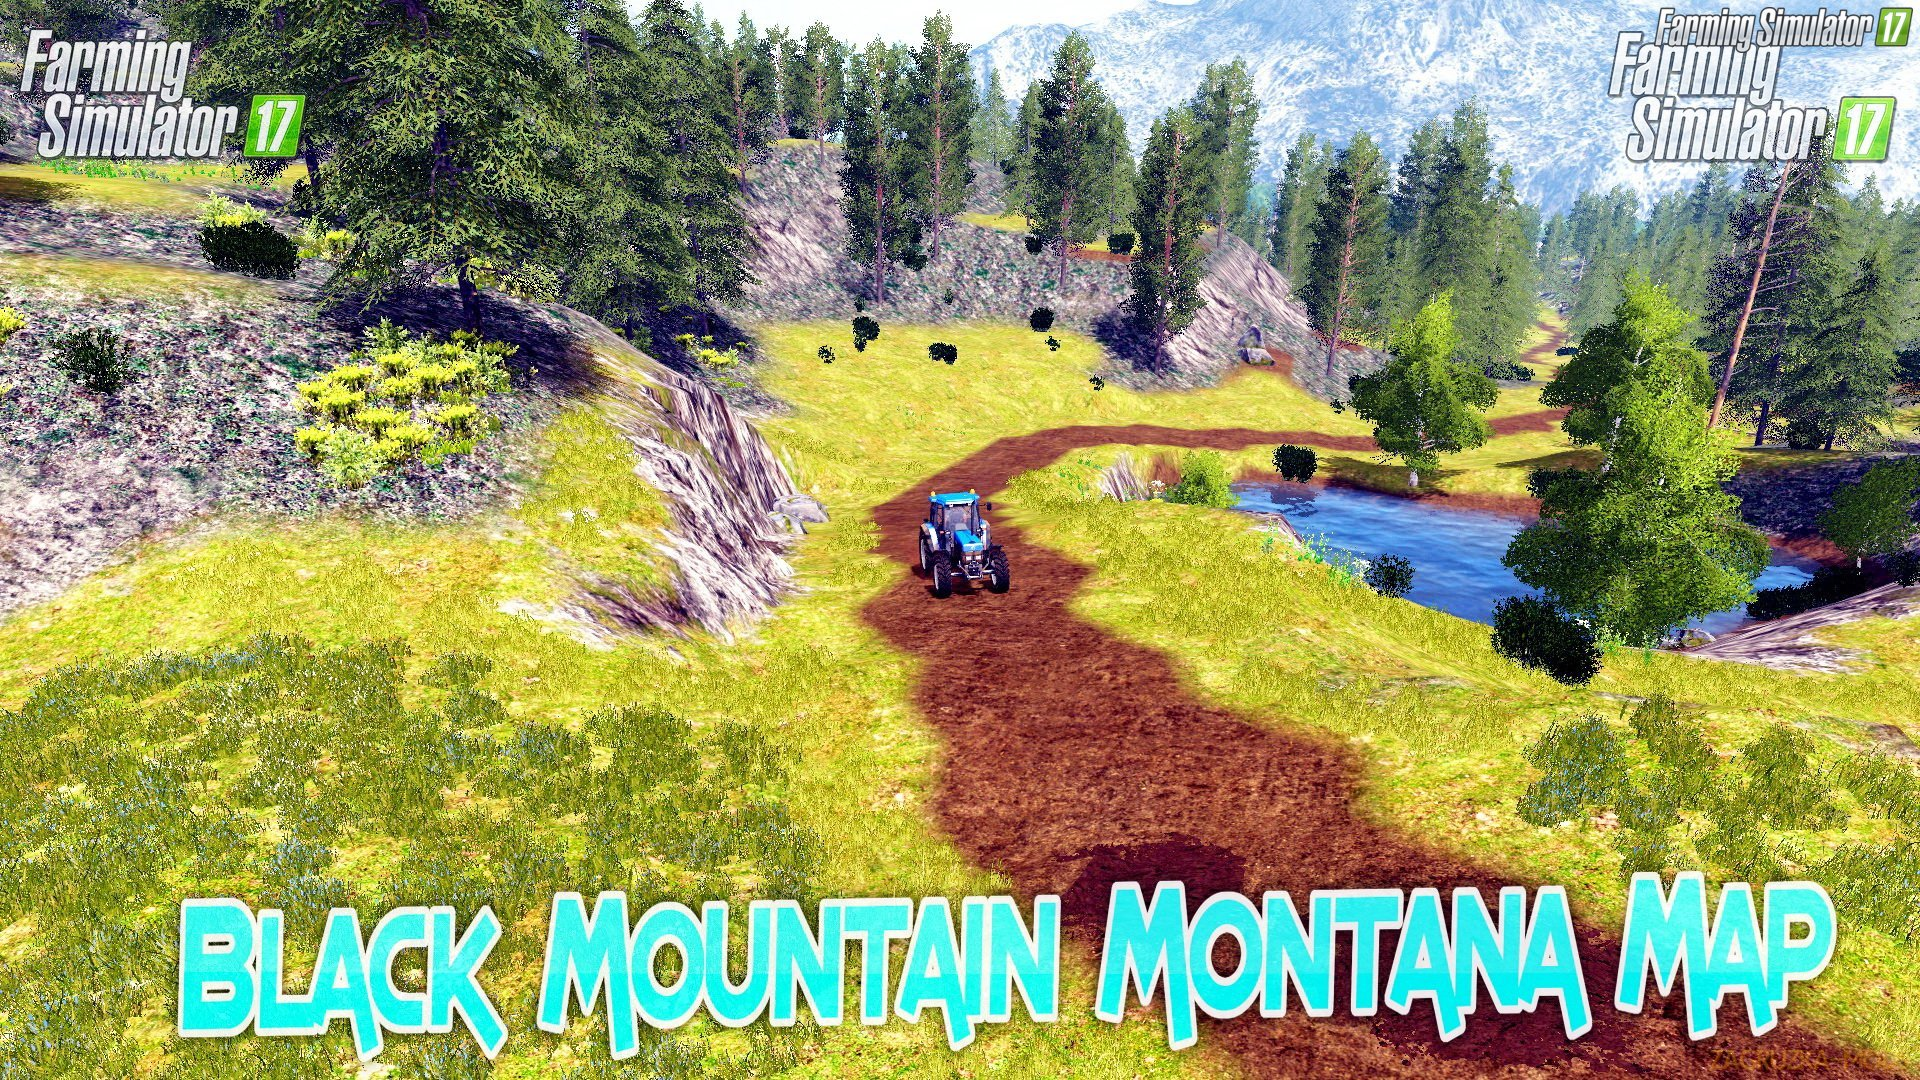 Black Mountain Montana Map v2.0 for FS 17